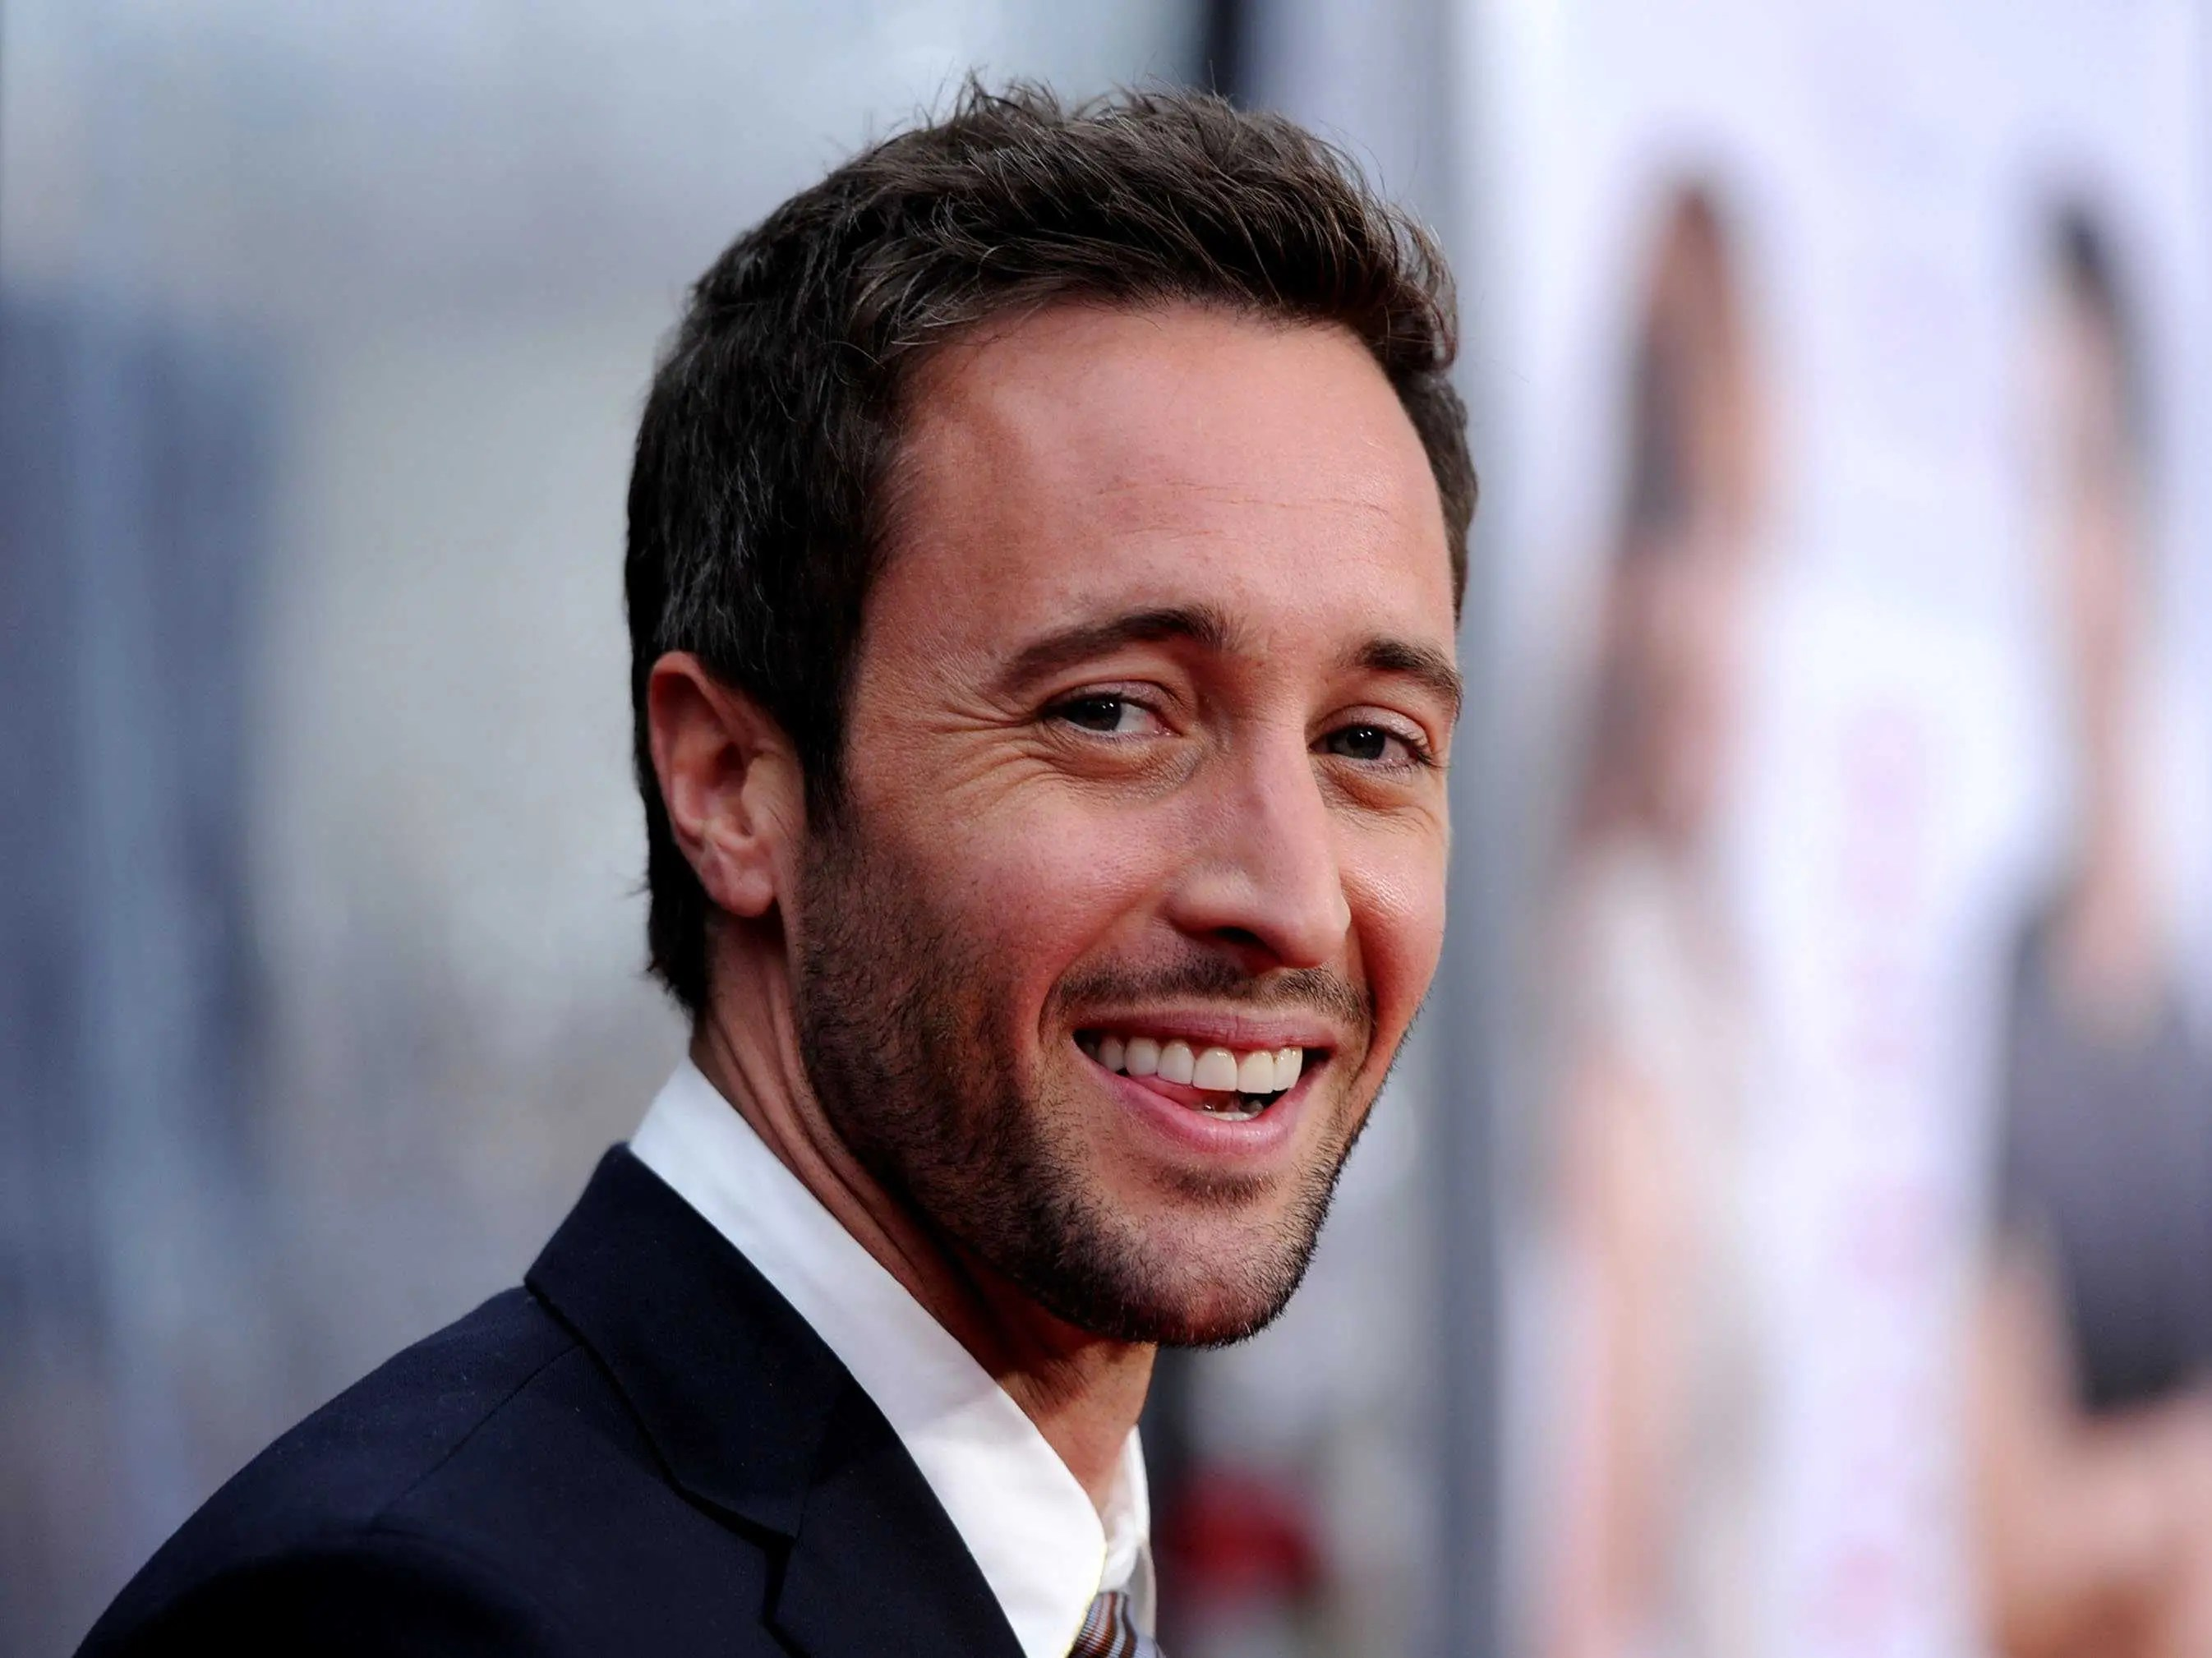 20. Alex O'Loughlin: $2,530,000